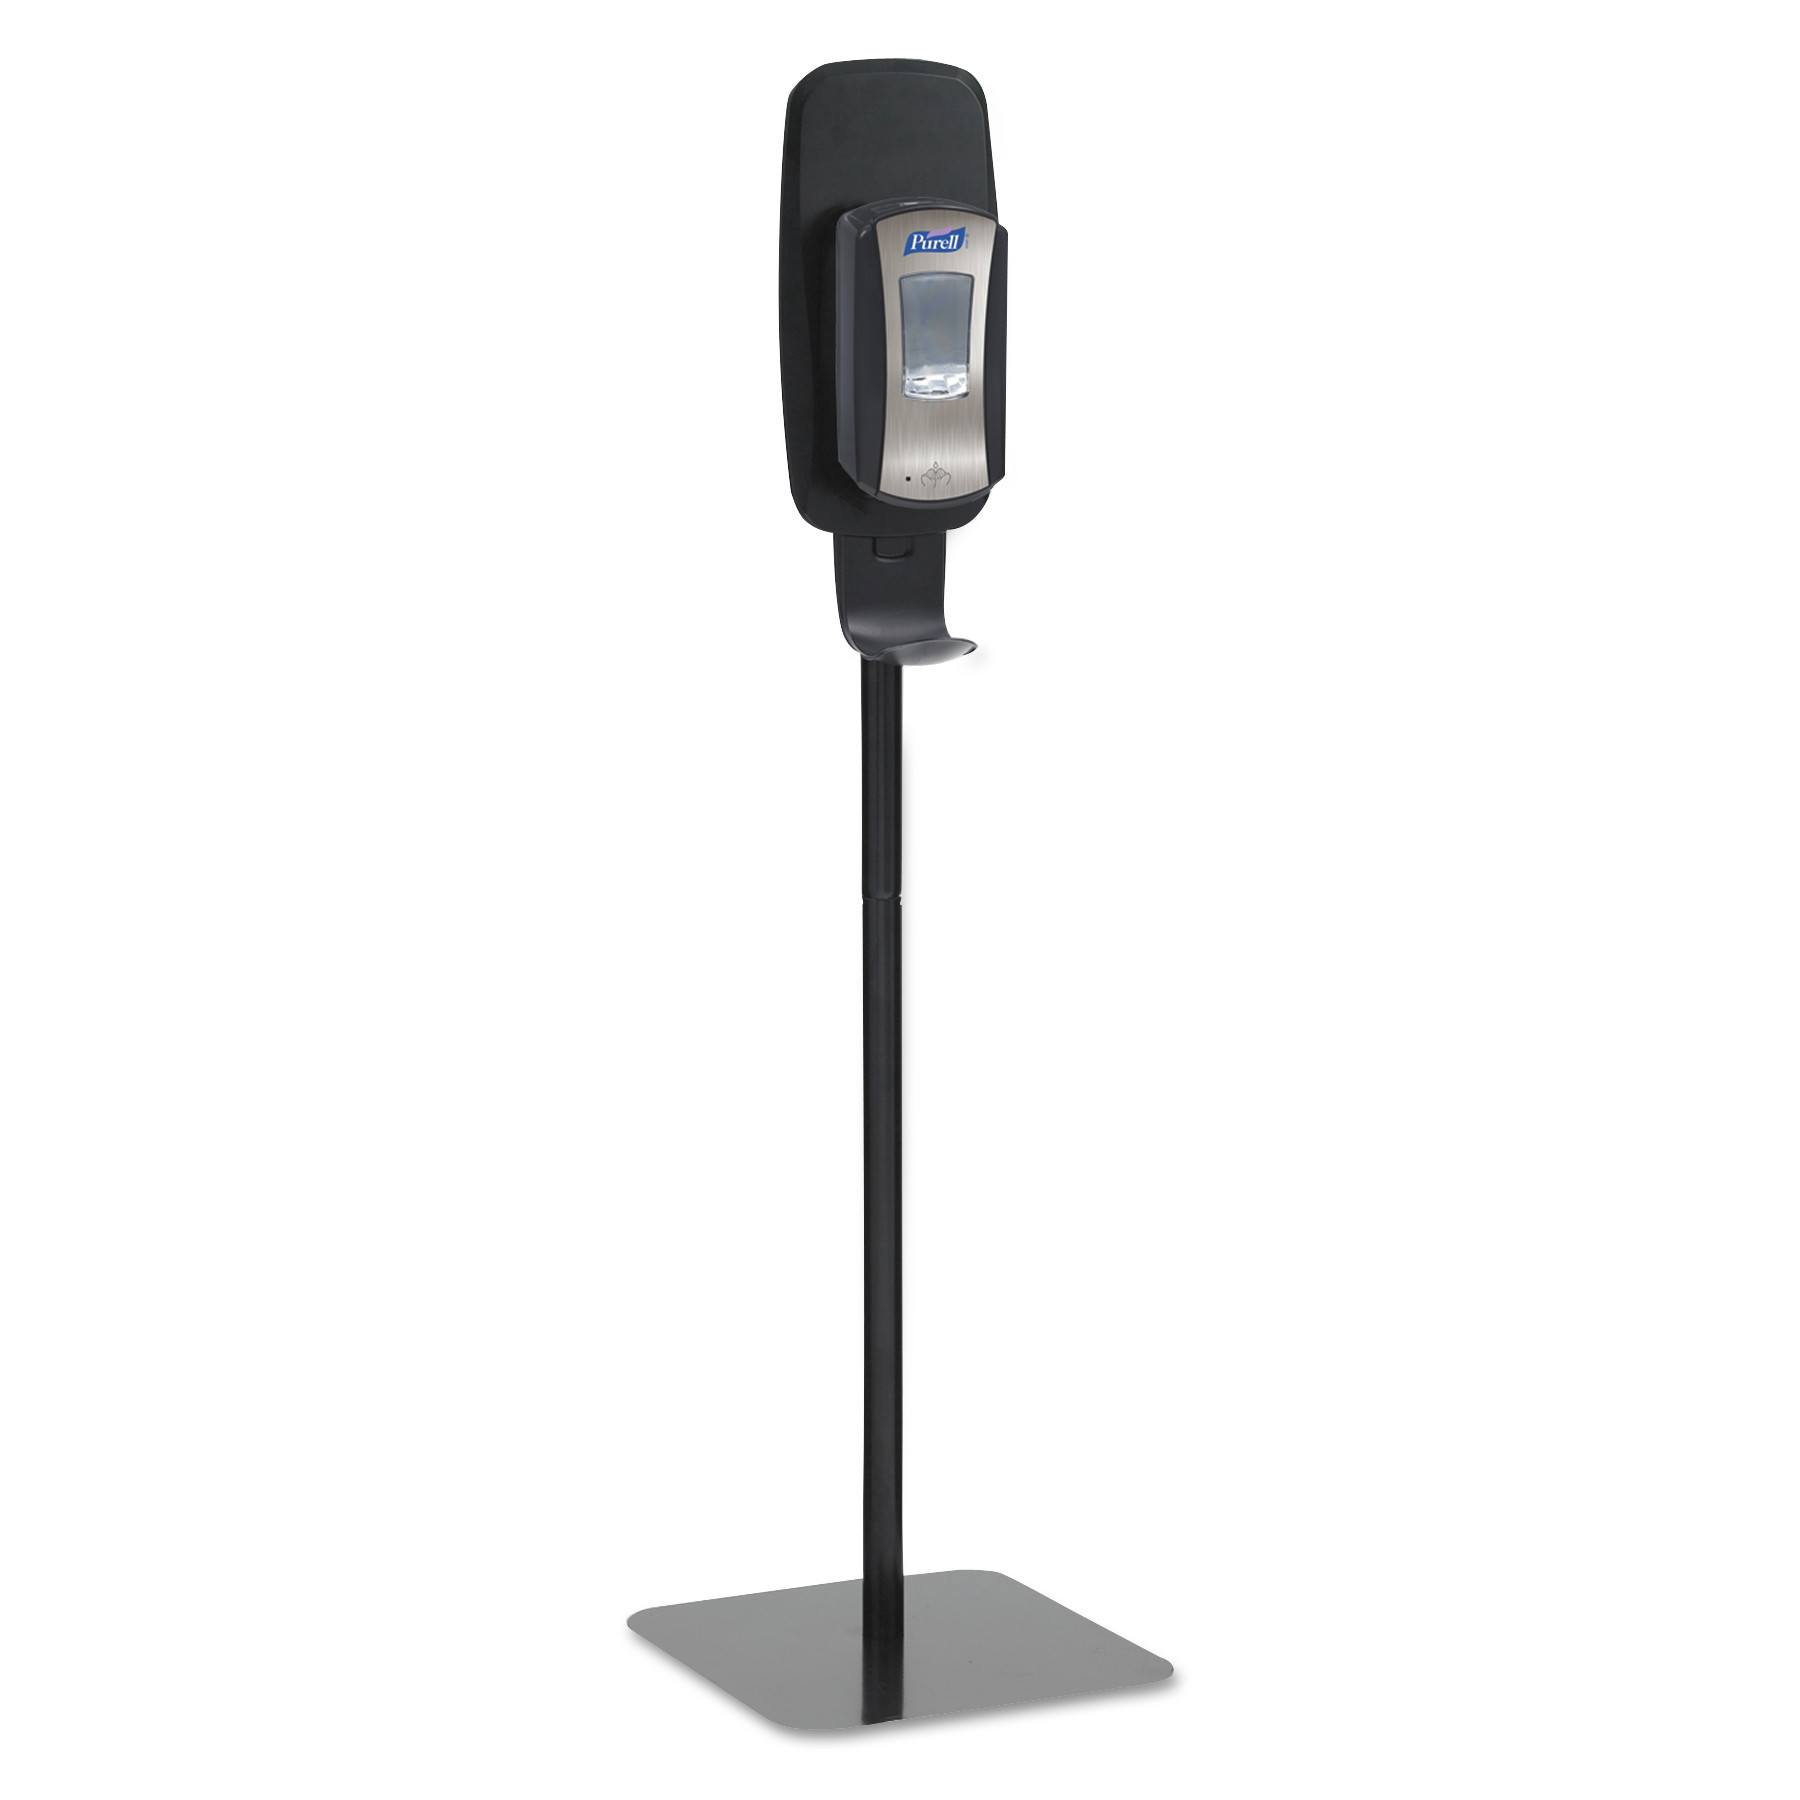 PURELL LTX or TFX Touch-Free Dispenser Floor Stand, Black, 23 3/4 x 16 3/5 x 5 29/100